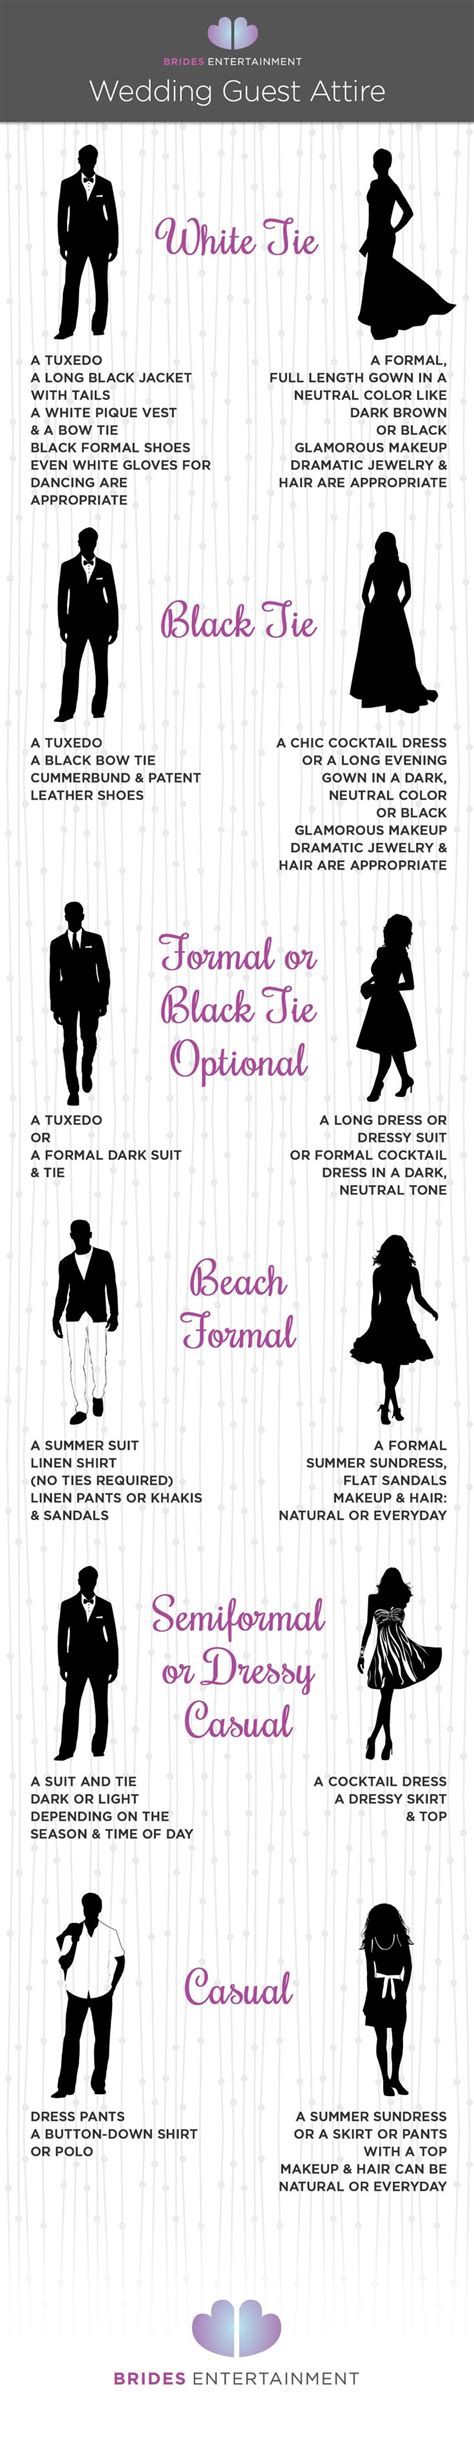 Wedding Attire Black Tie Optional by Wedding Attire Deciphered Difference Between White And